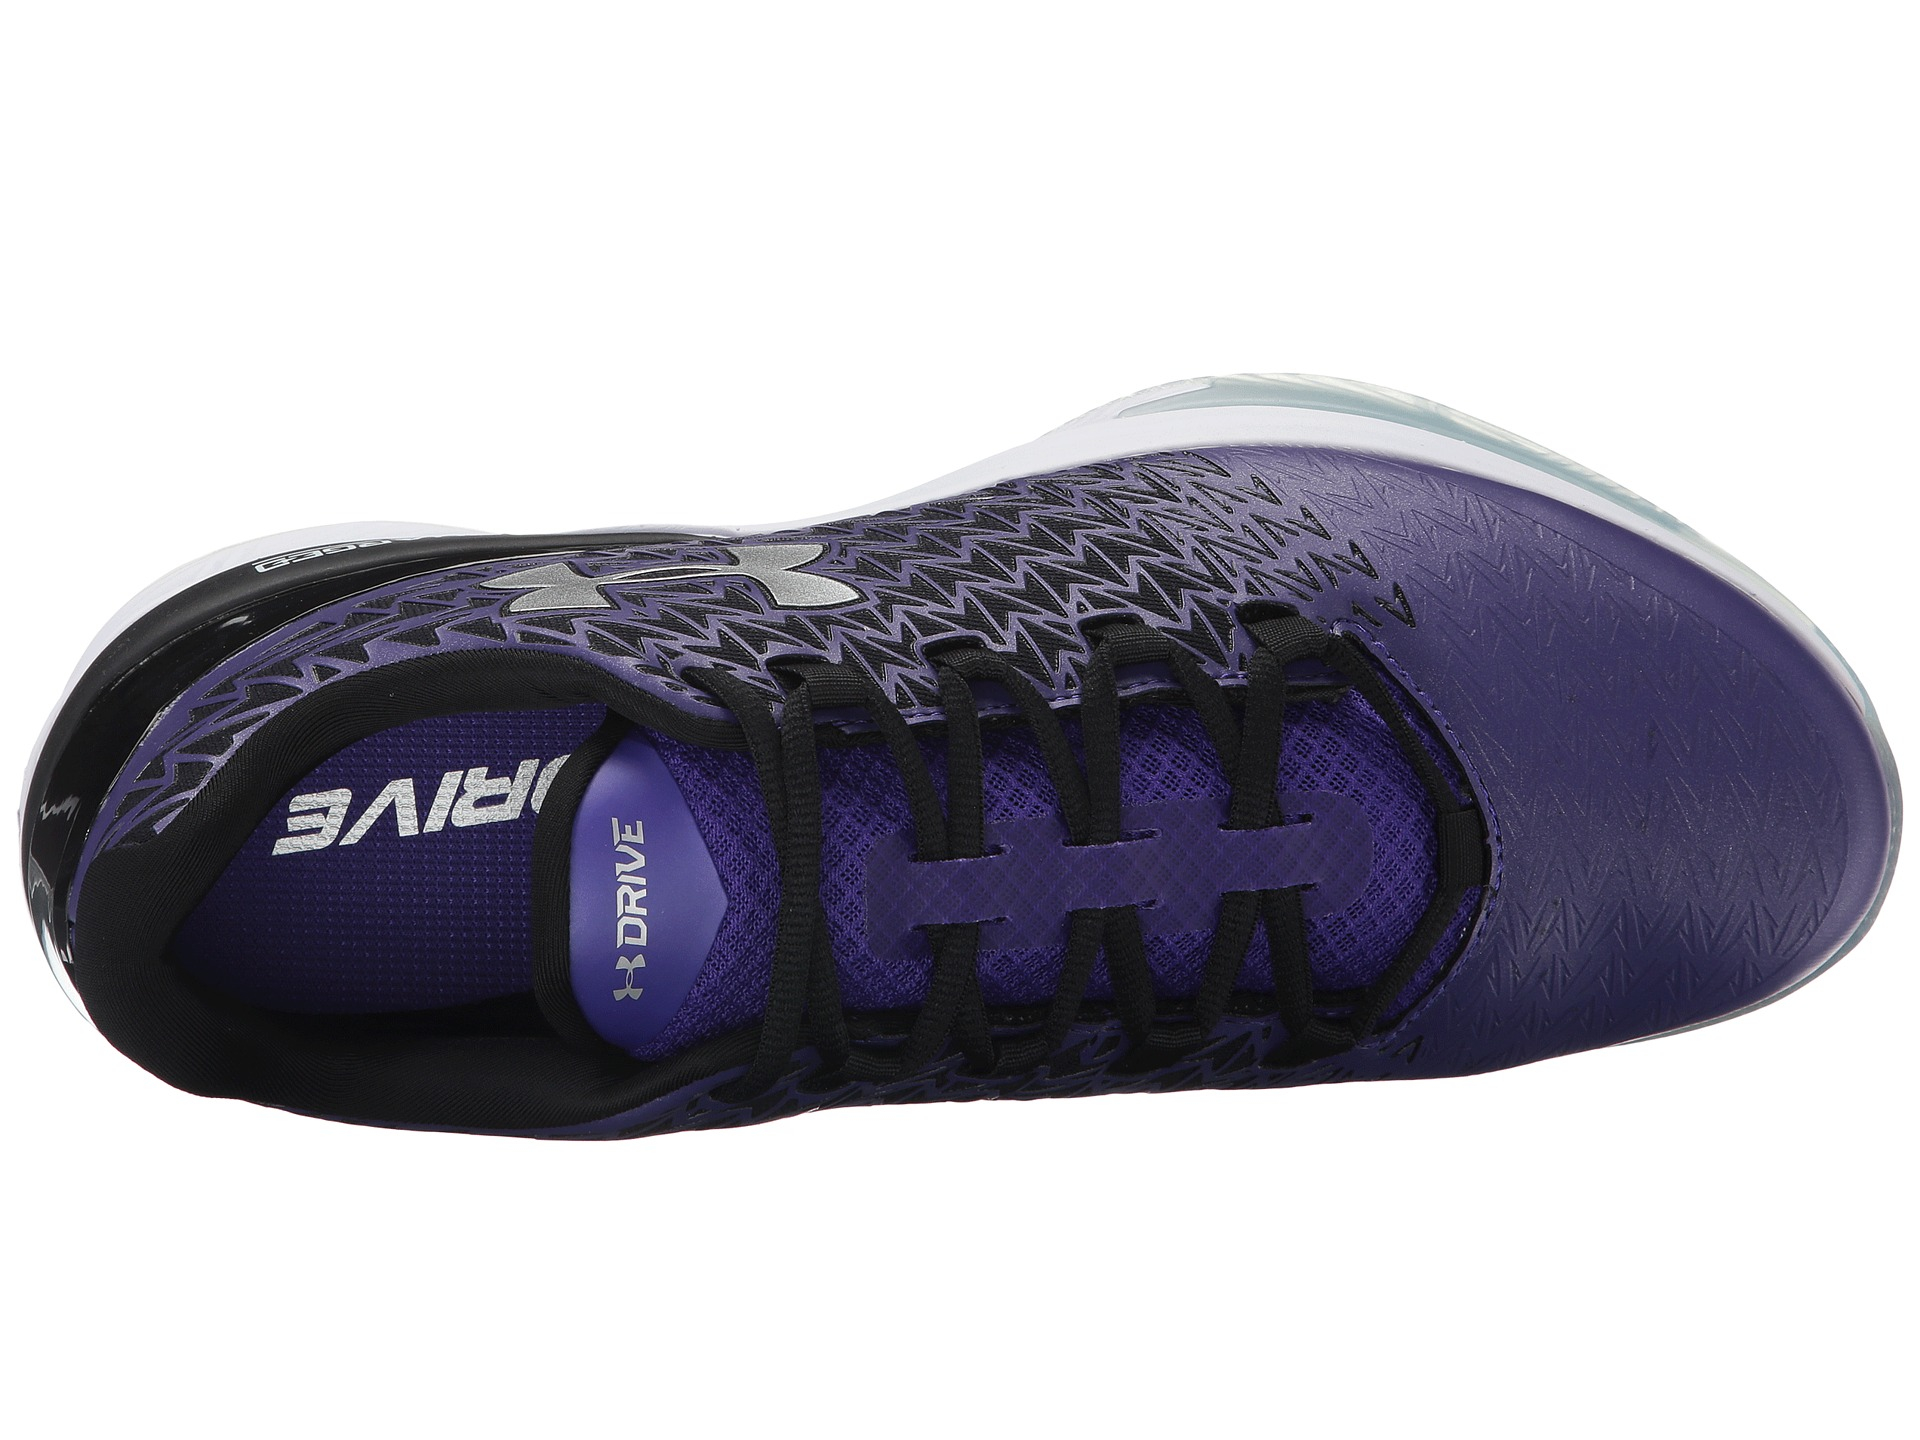 e61623e5fb ... order lyst under armour ua clutchfit drive 3 low in purple for men  c53ee fbed8